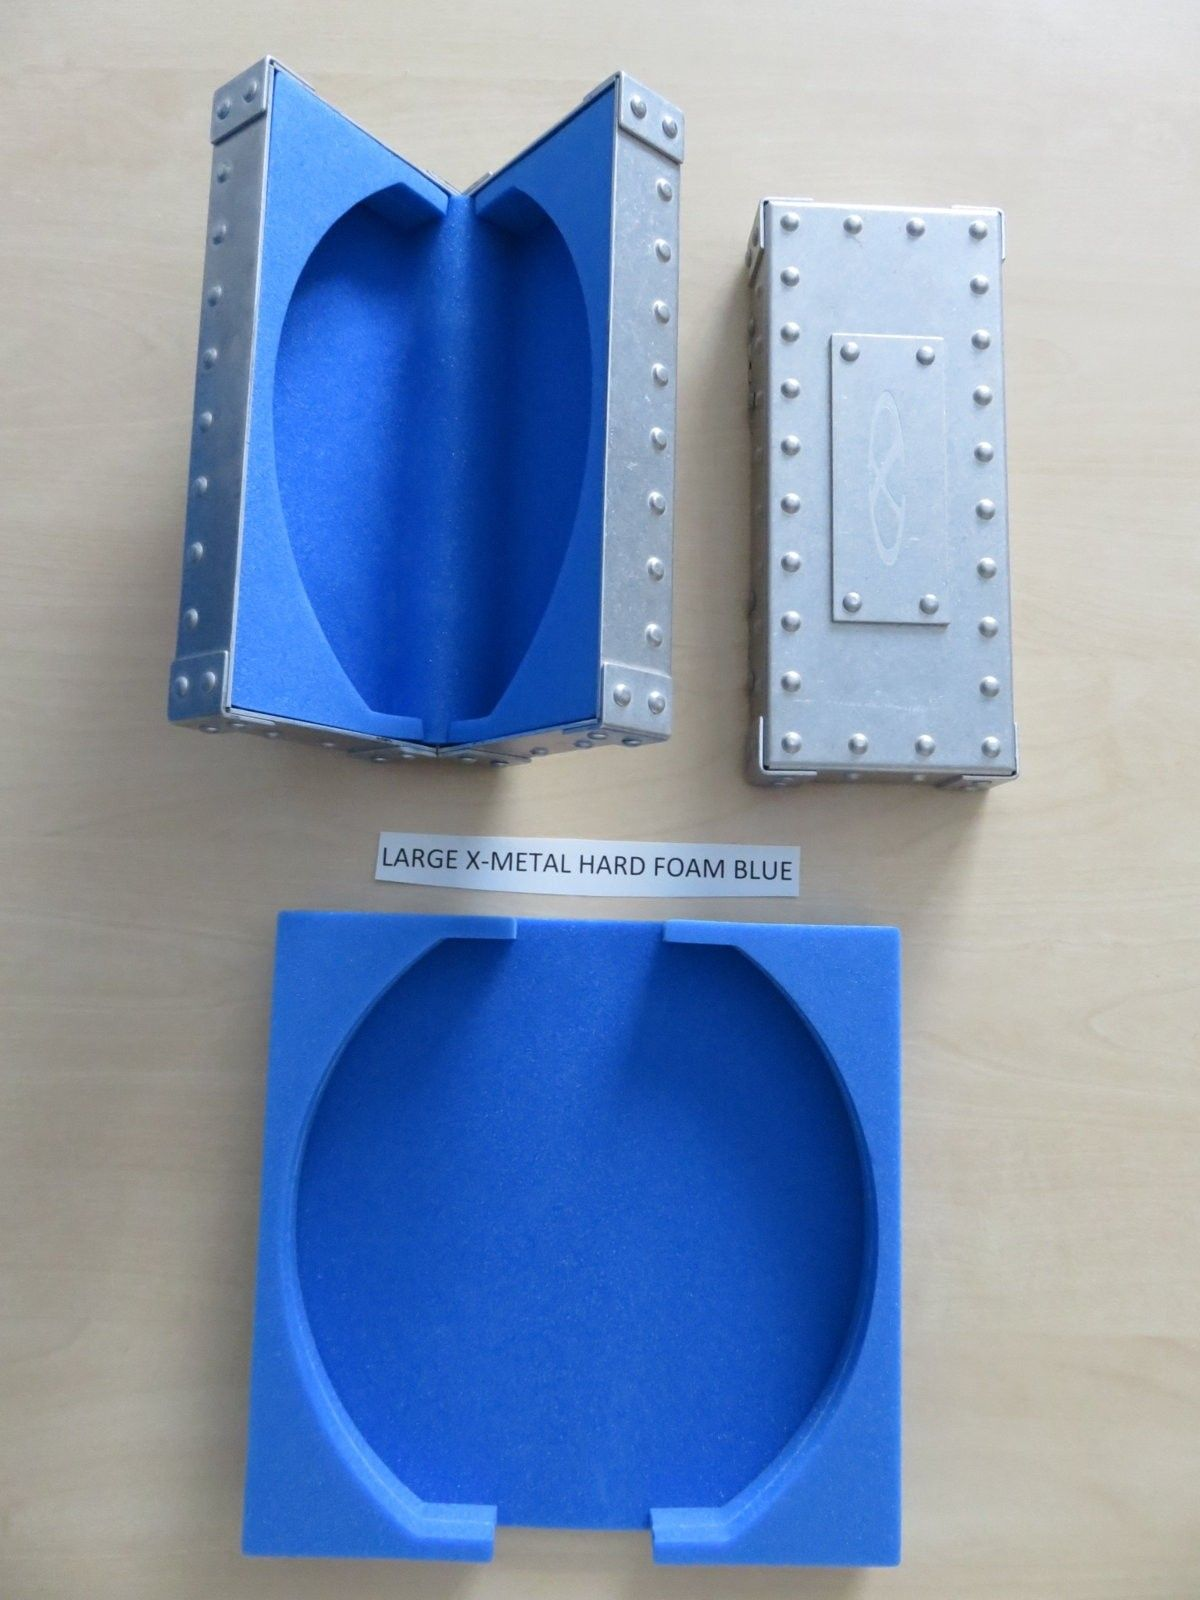 Replacement Foam for Vaults / Cases - IMG_2026.JPG